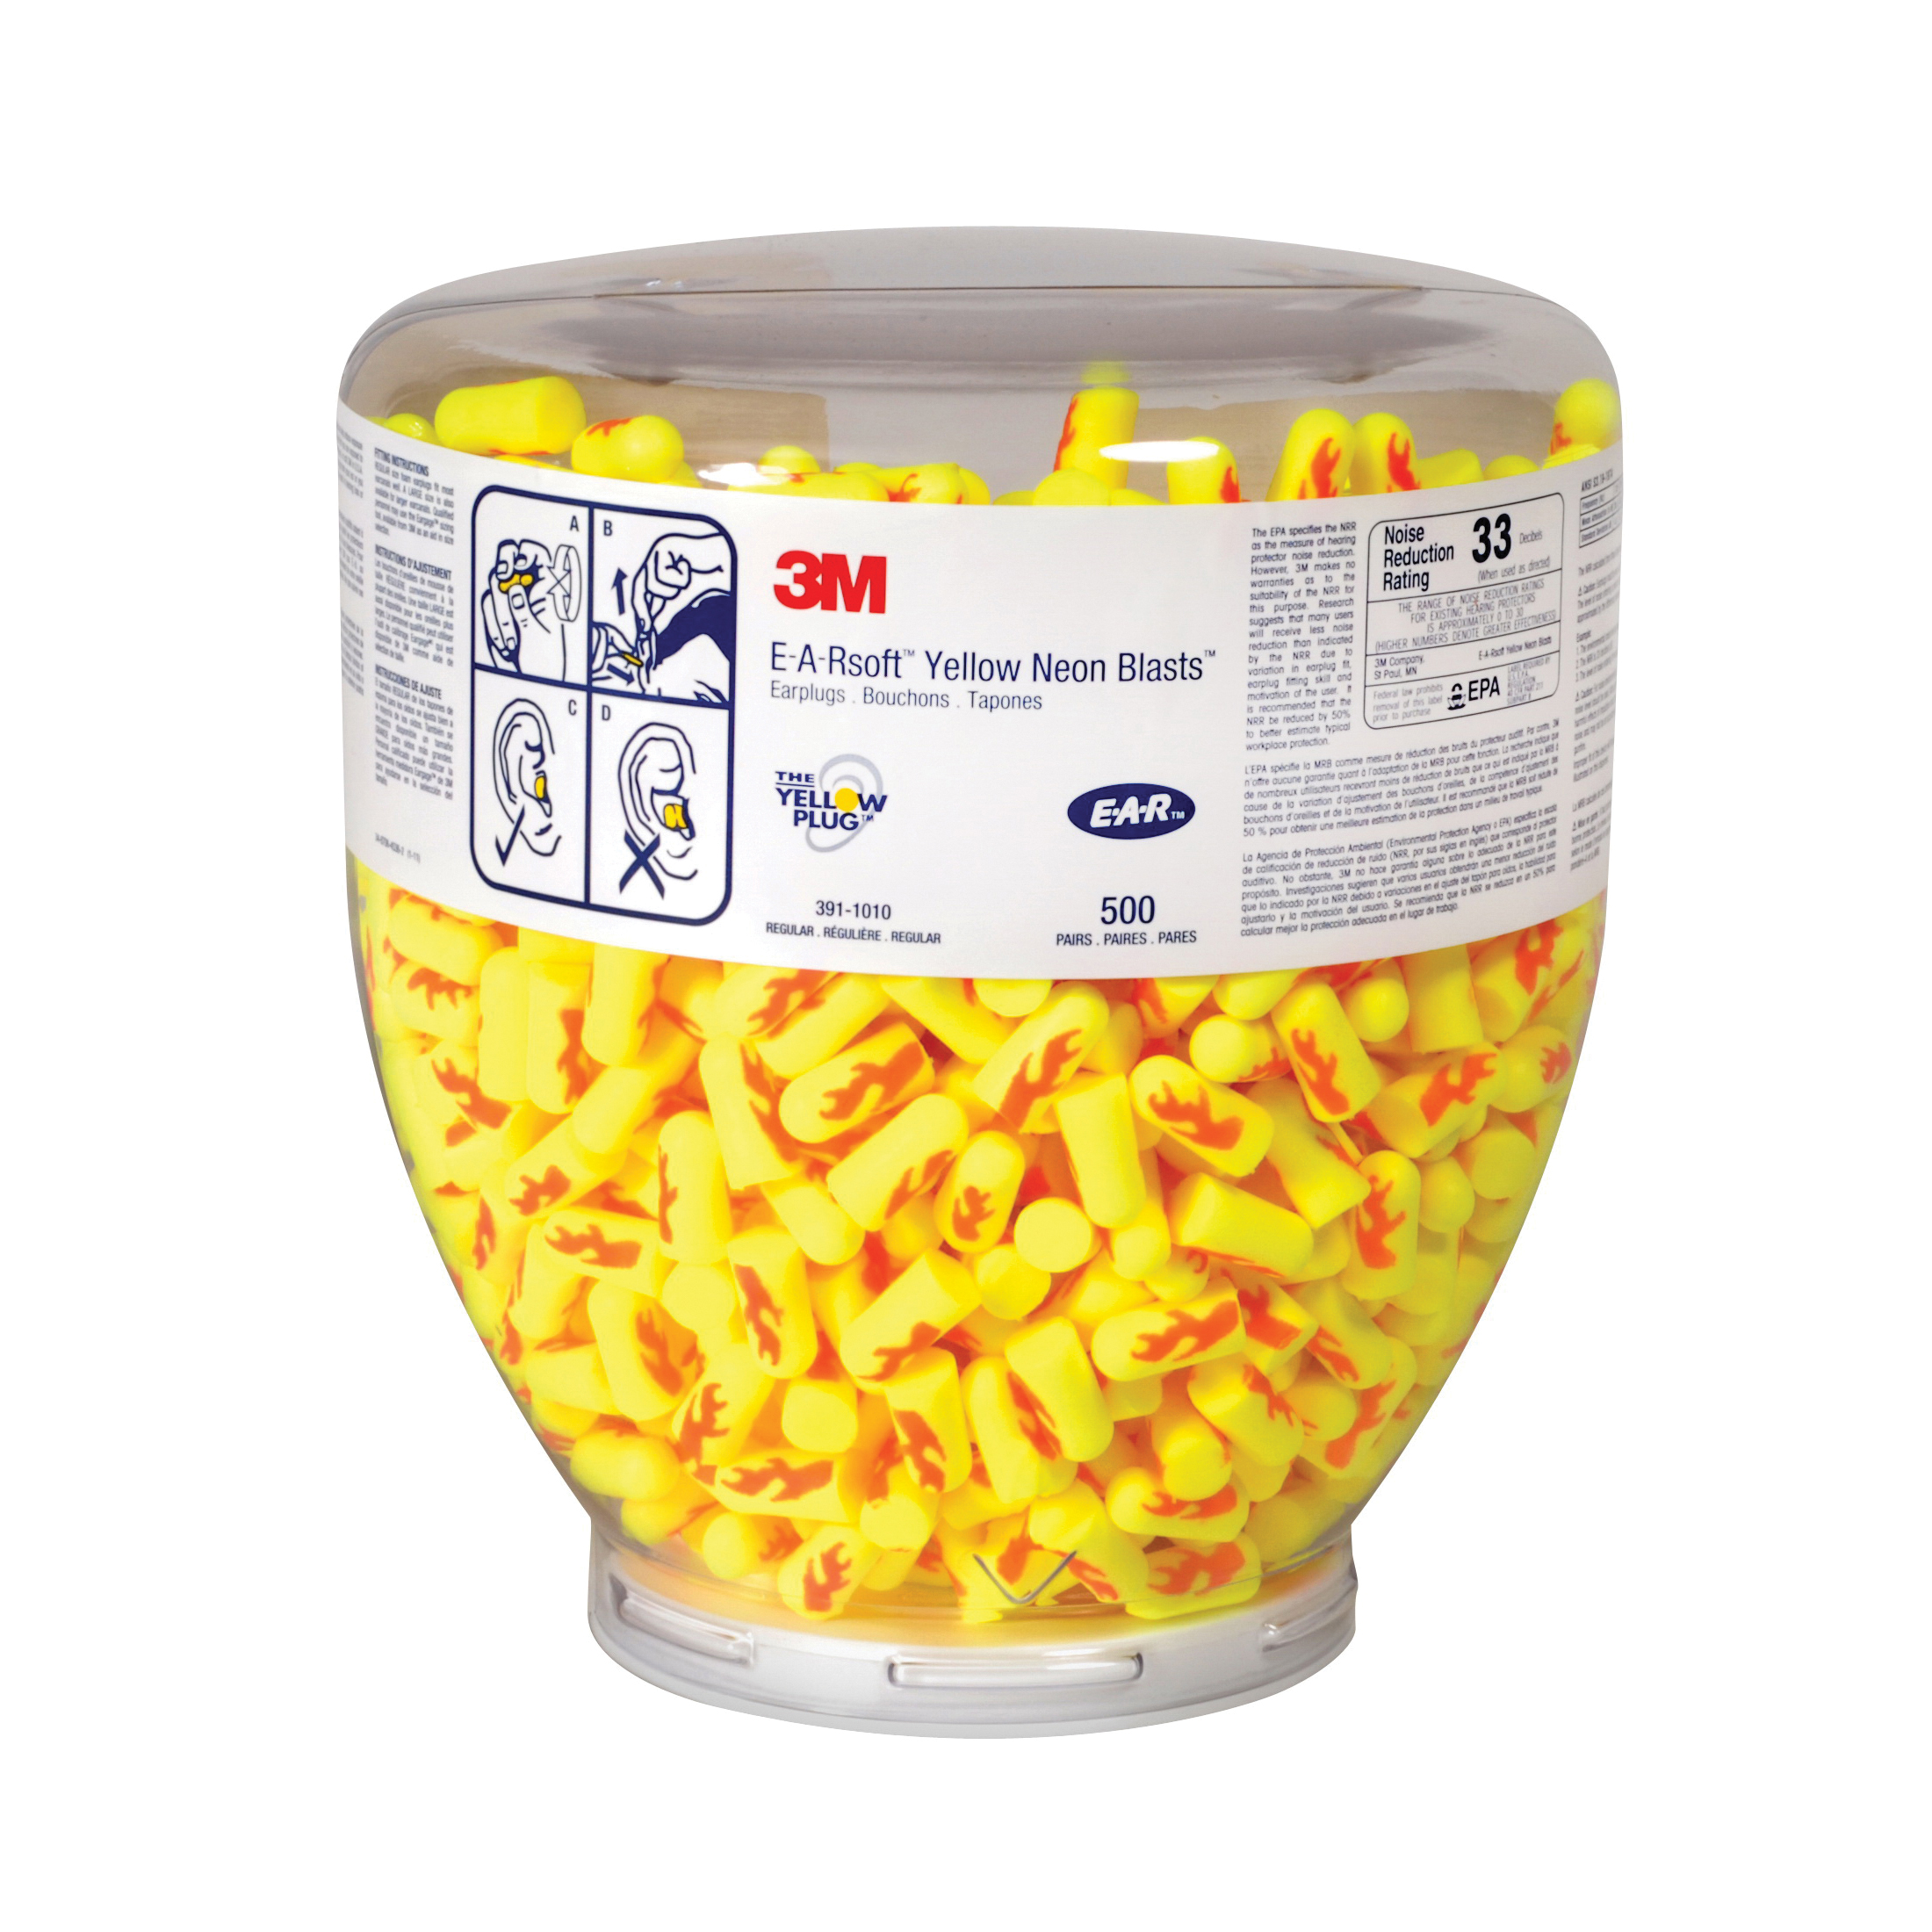 3M™ E-A-R™ 3M™ E-A-Rsoft™ 080529-91012 Blasts™ Dispenser Refill, 33 dB Noise Reduction, Tapered Shape, CSA Class AL, ANSI S3.19-1974, Disposable, Uncorded Design